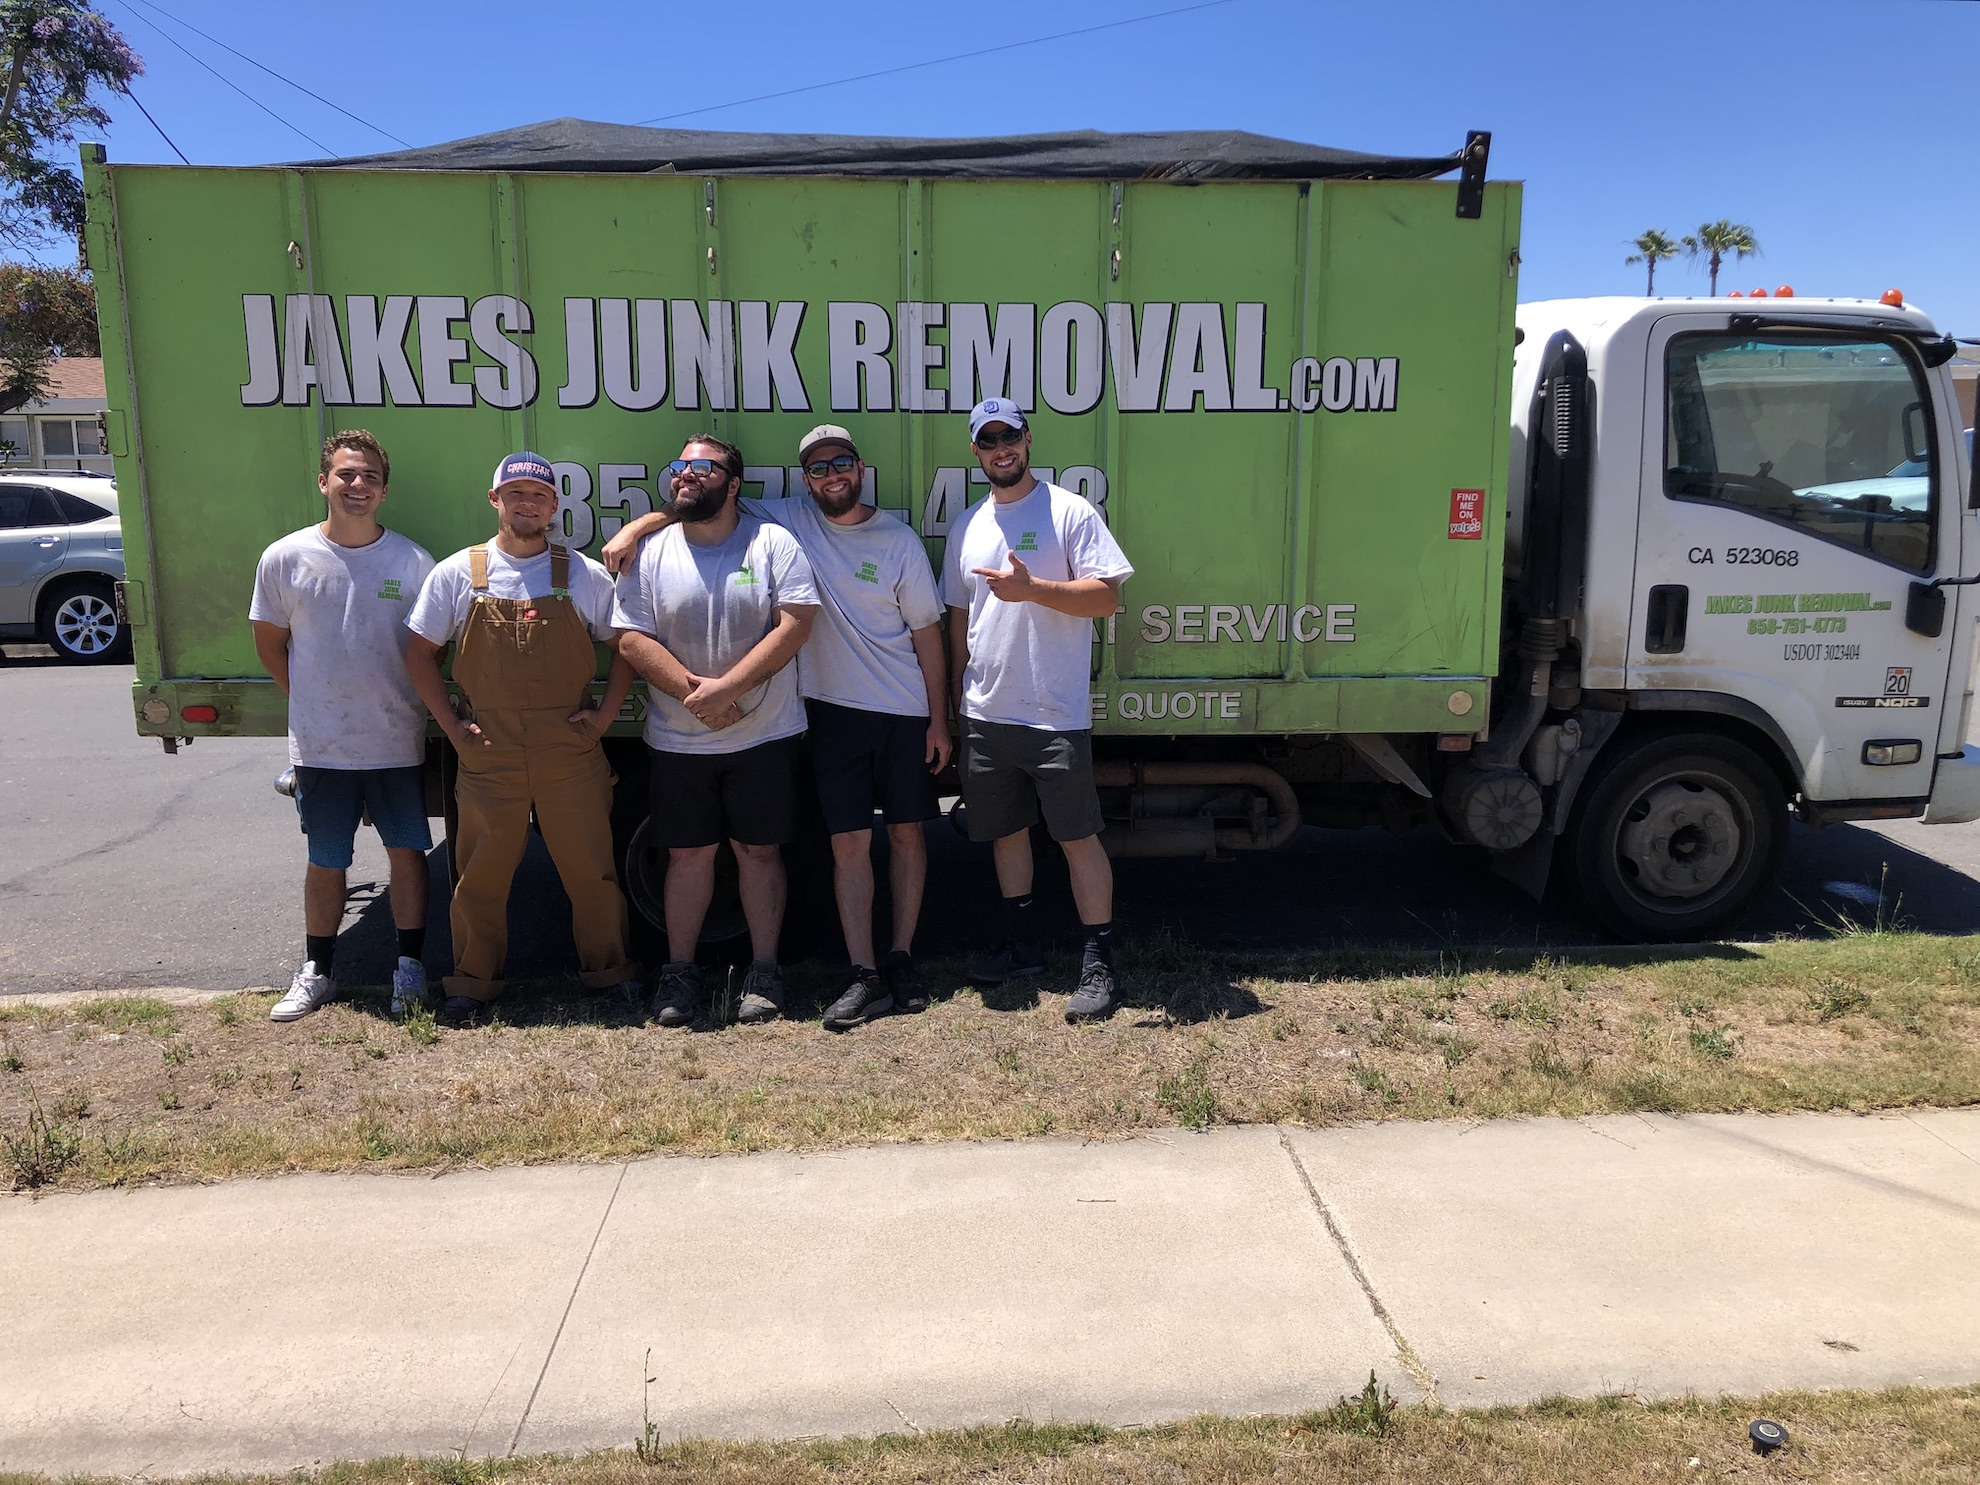 Jakes Junk Removal – We move your junk